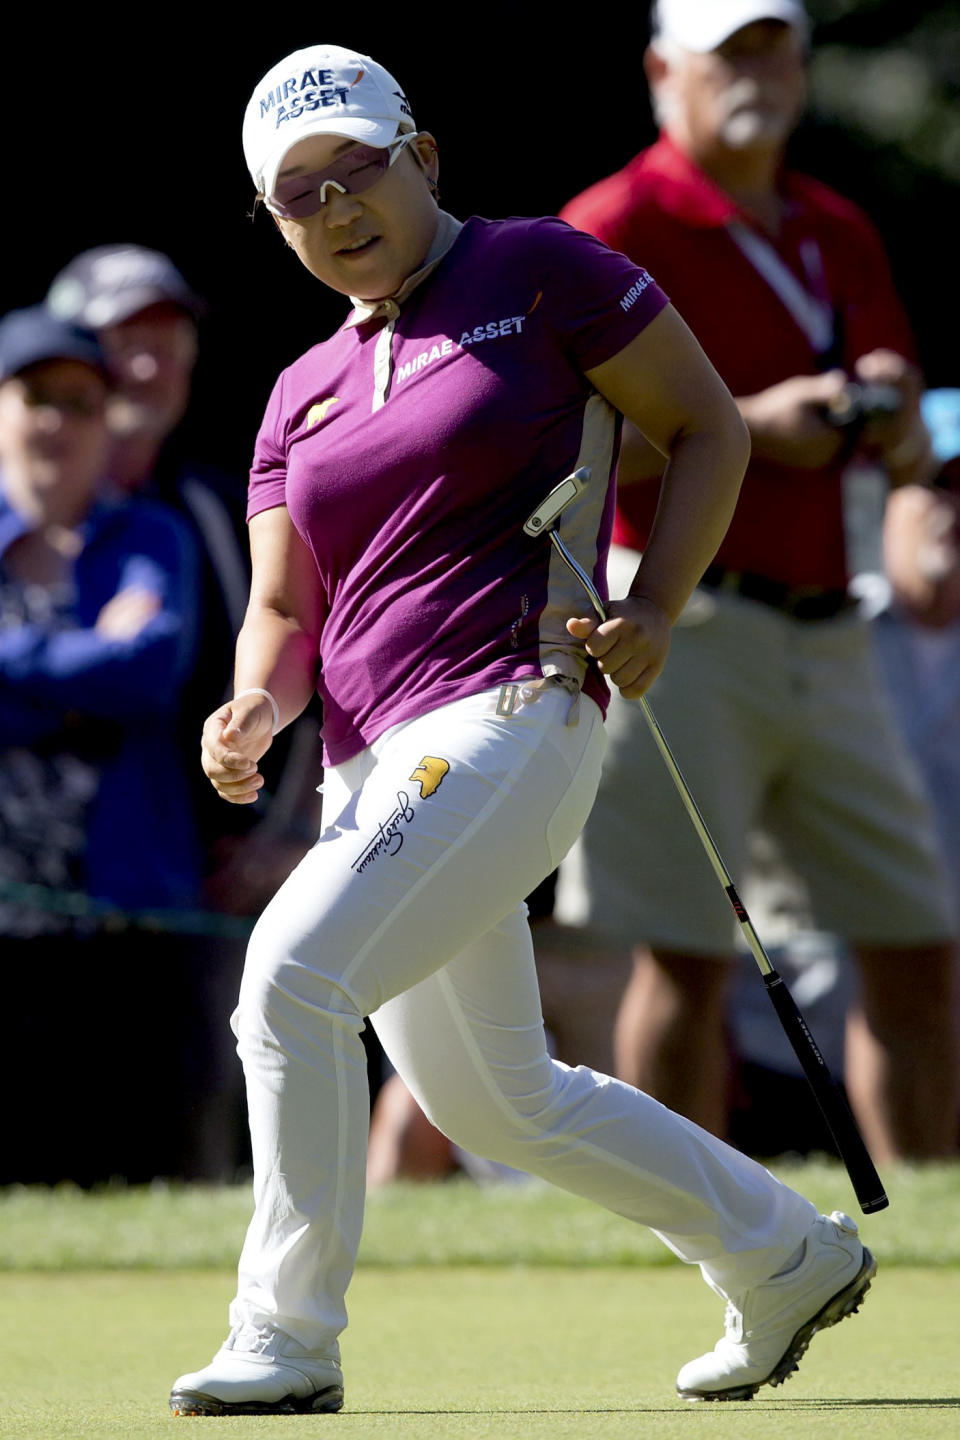 Jiyai Shin, of South Korea, celebrates after making par on the third hole during the final round of the LPGA Tour's Canadian Women's Open golf tournament, Sunday, Aug. 26, 2012, at the Vancouver Golf Club in Coquitlam, British Columbia. (AP Photo/The Canadian Press, Darryl Dyck)